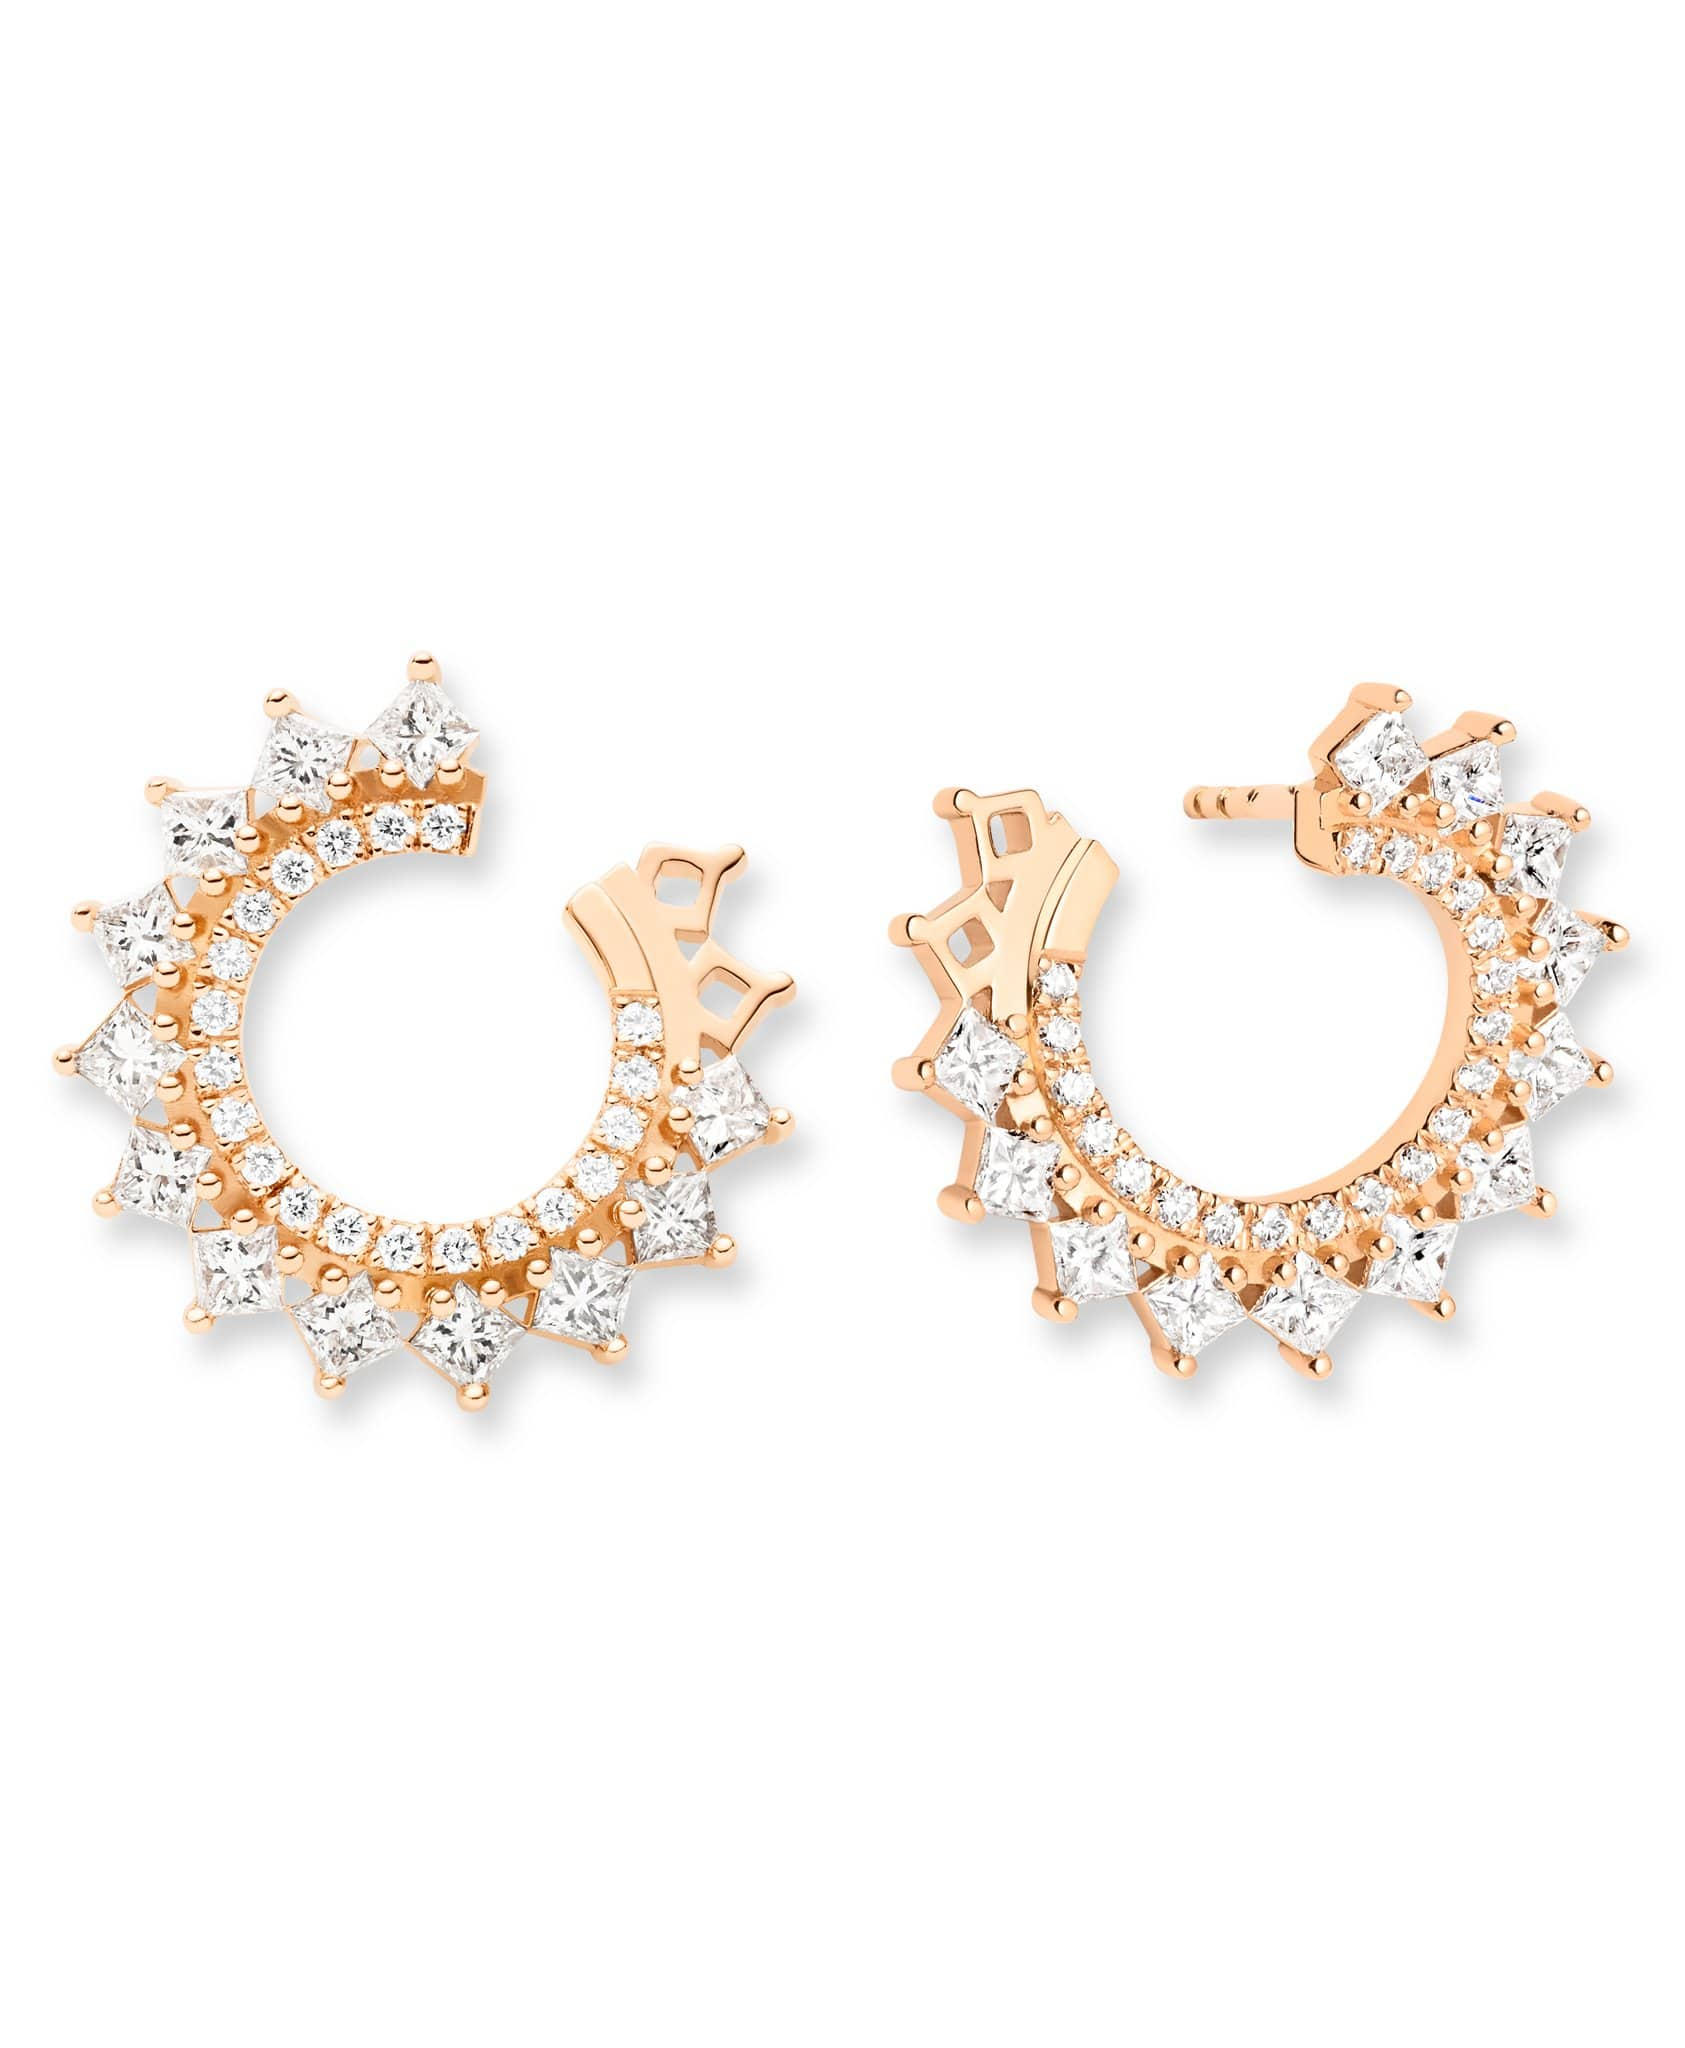 Princess Diamond Earrings: Discover Luxury Fine Jewelry | Nouvel Heritage